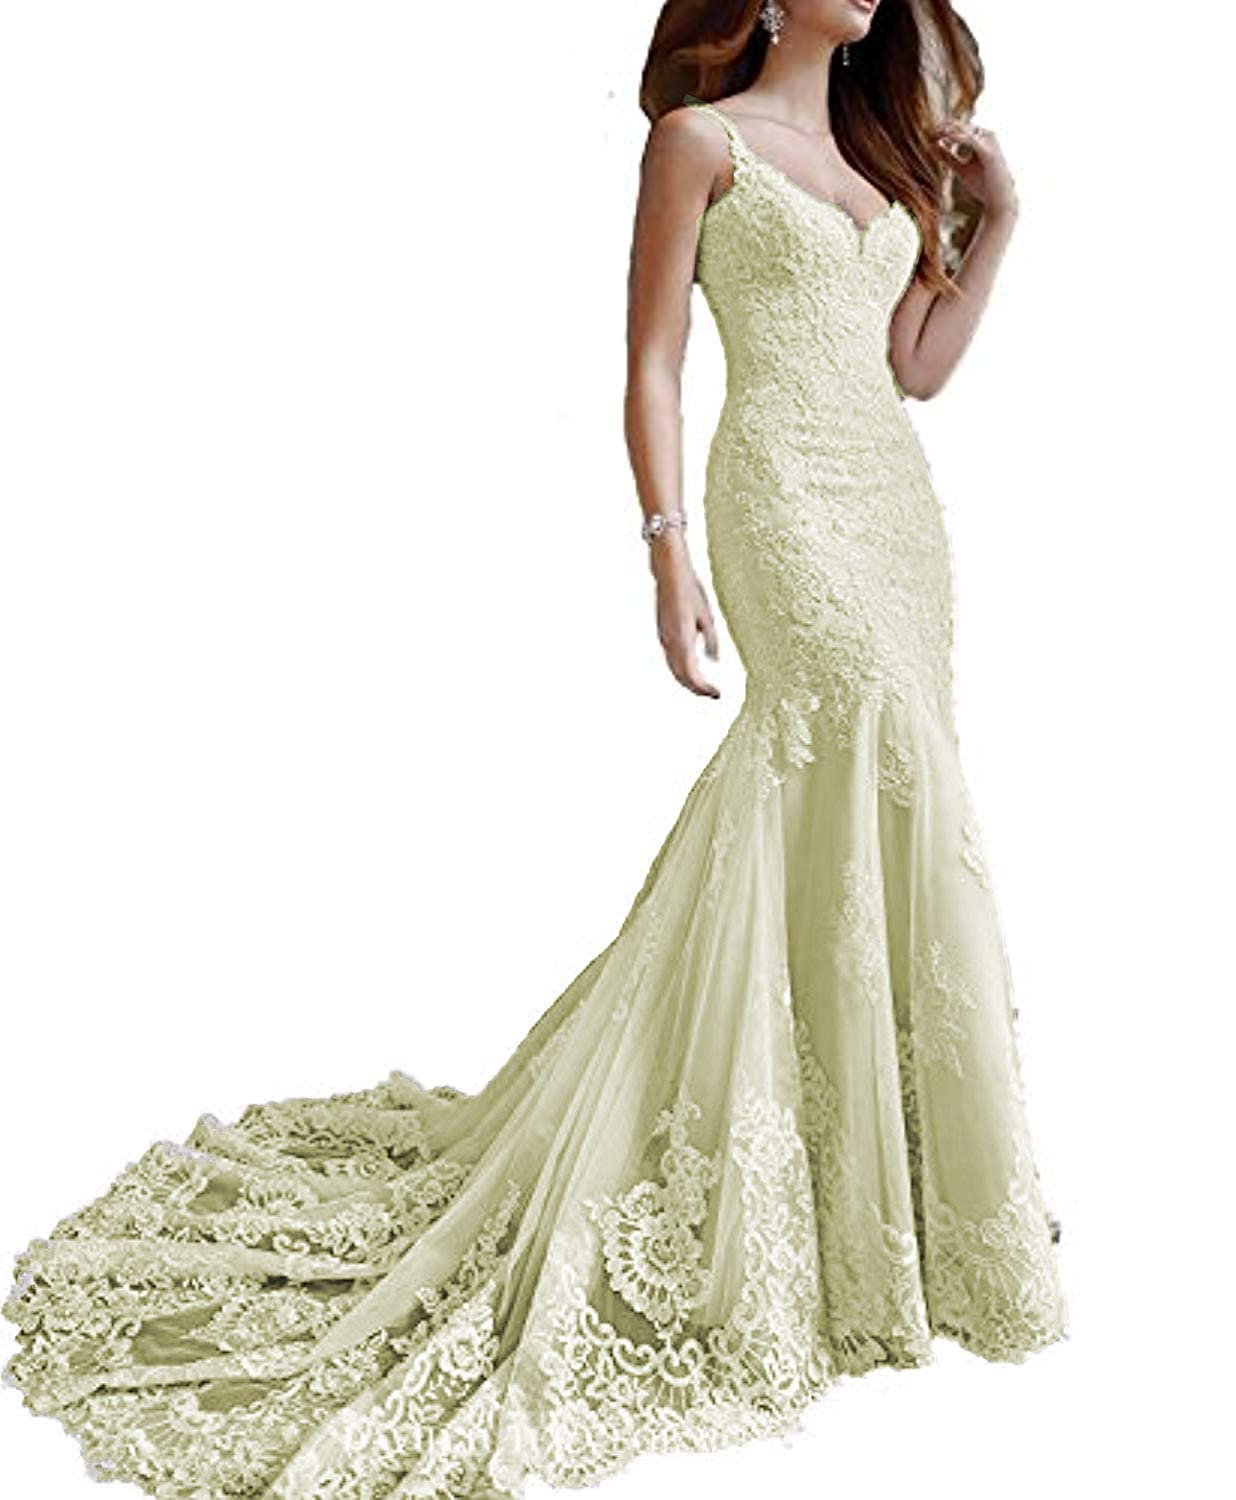 Champagne Marirobe Women's Mermaid Lace Applique Formal Dresses V Neck Backless Wedding Dresses Sleeveless Evening Dresses